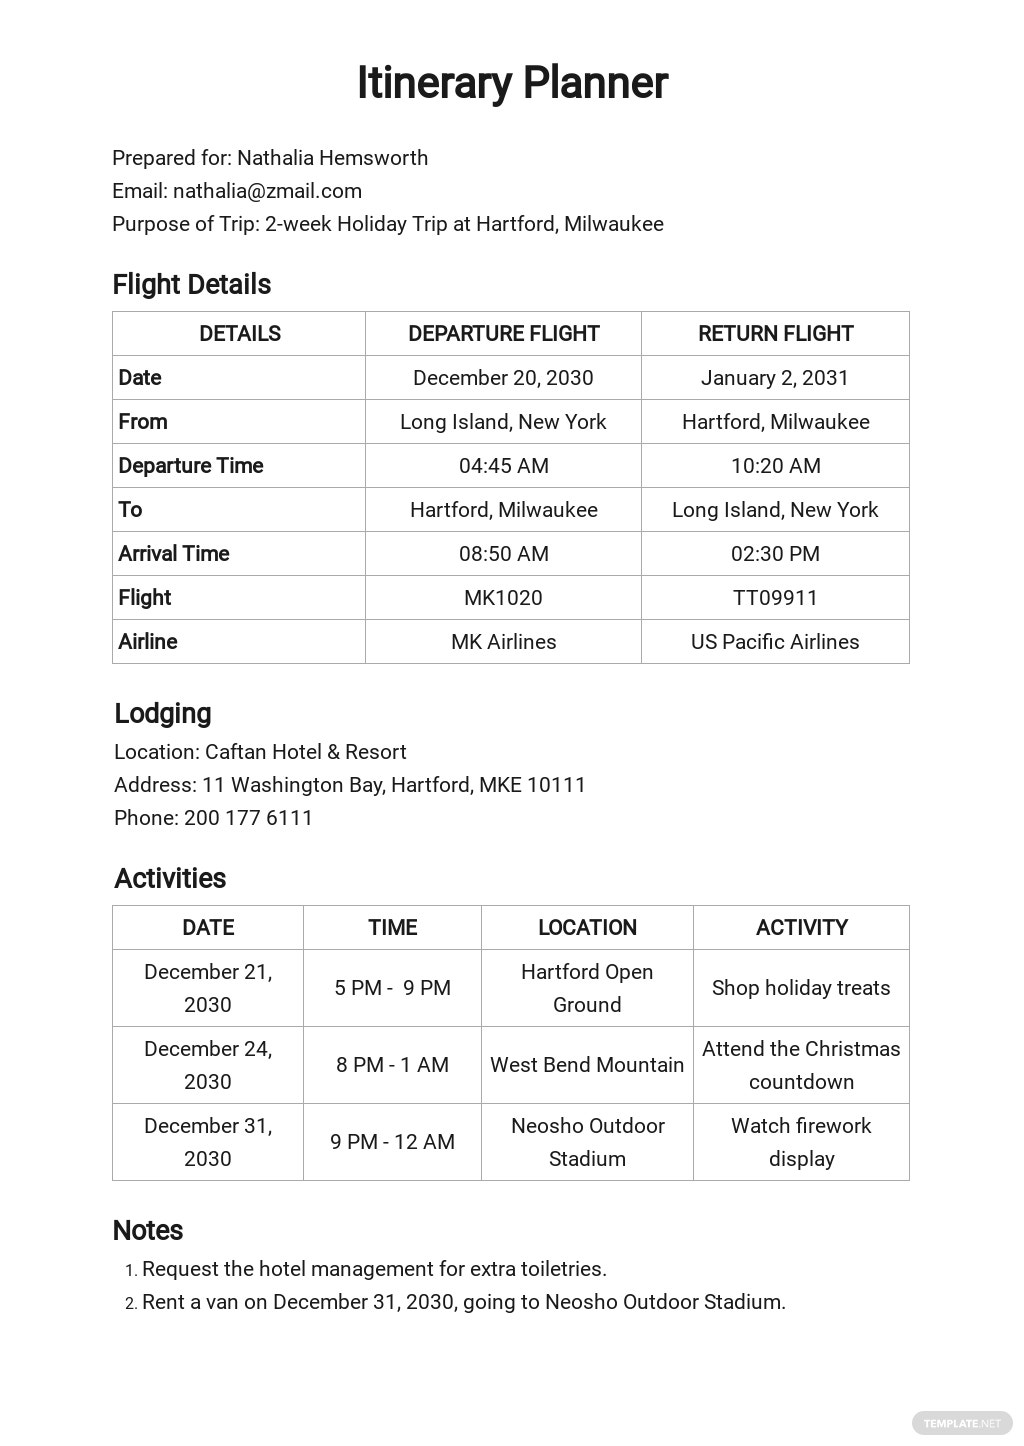 Free Blank Itinerary Planner Template.jpe